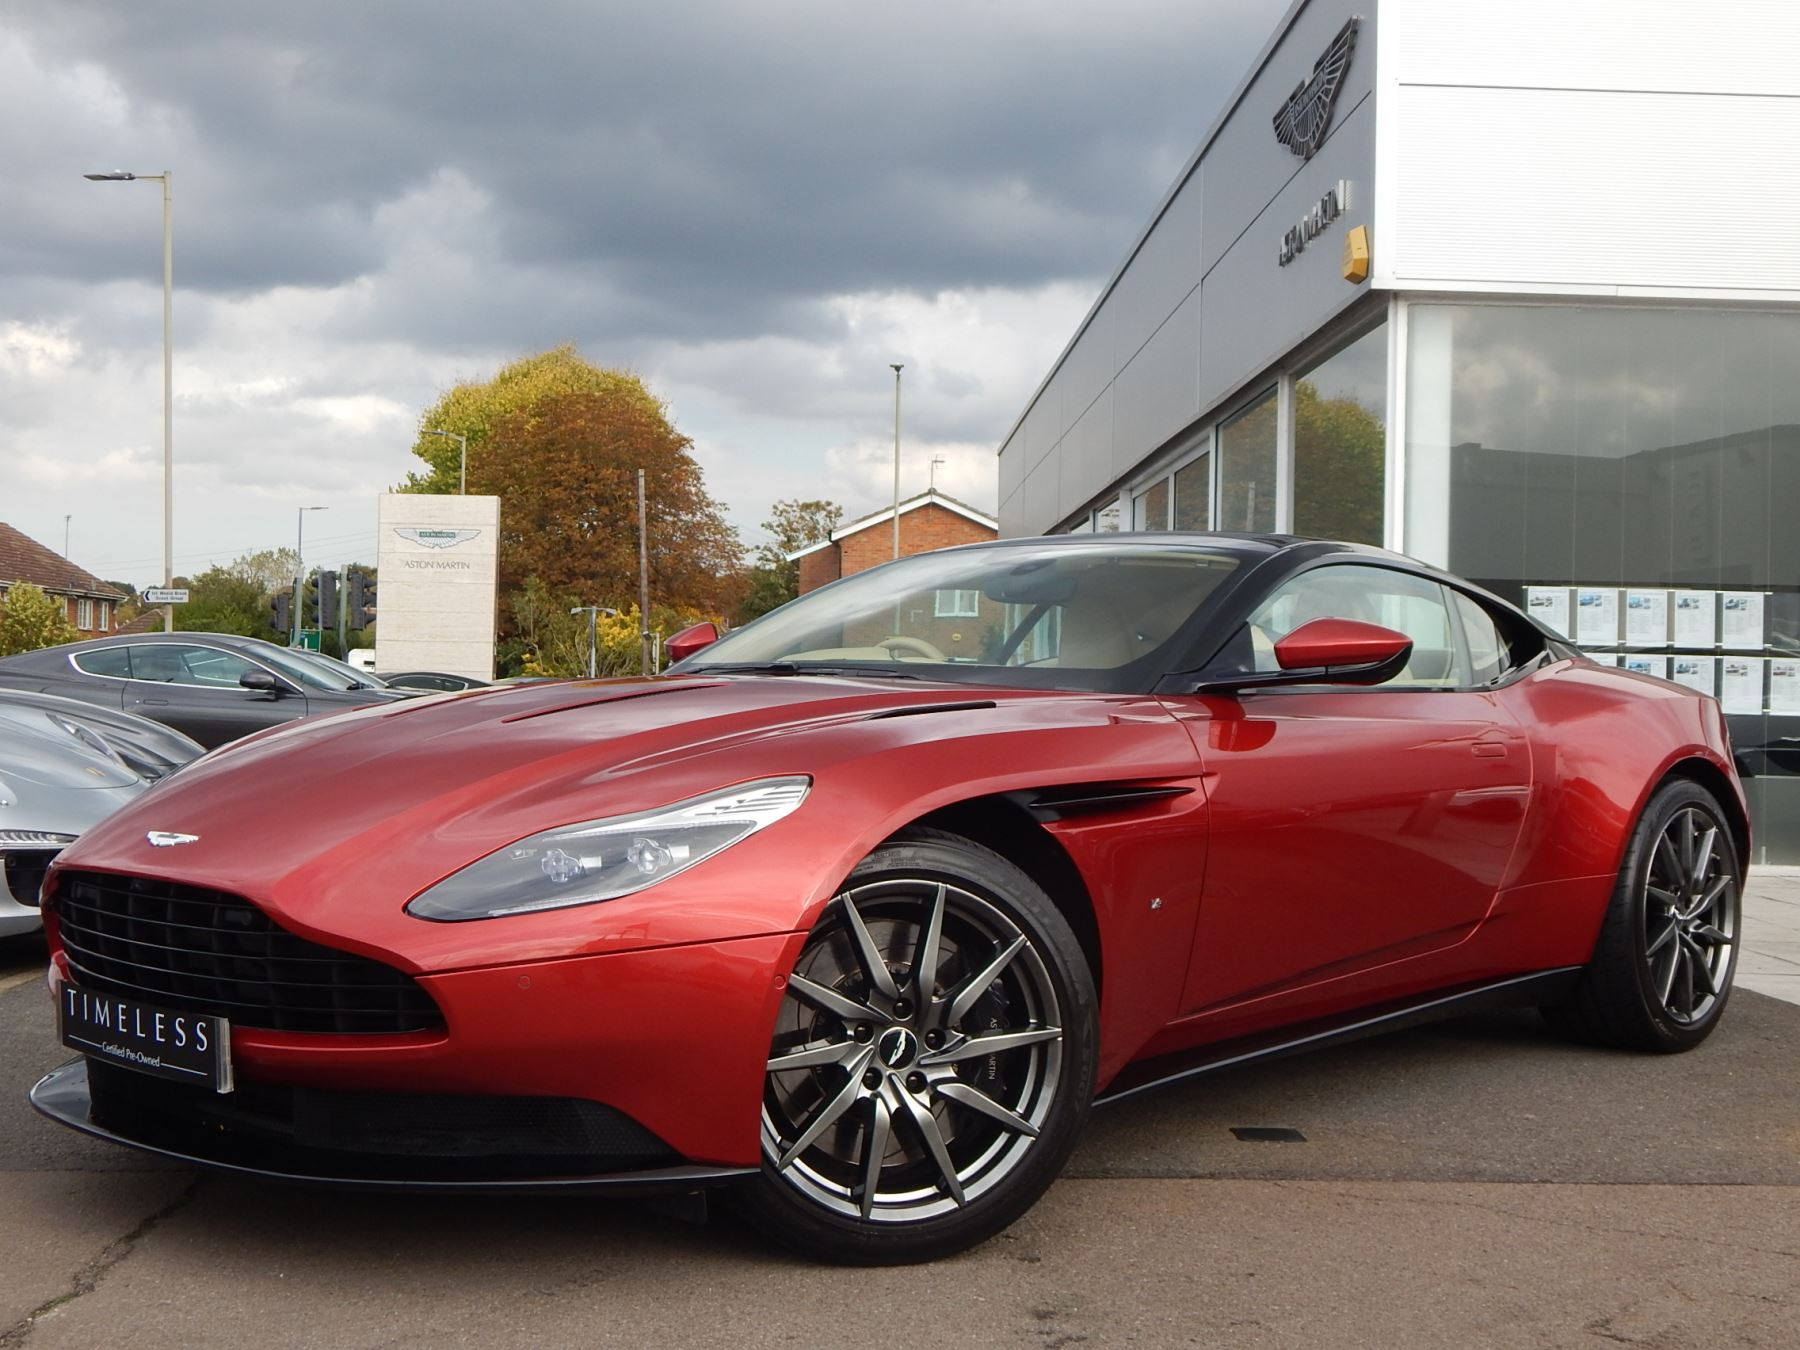 Used Aston Martin Db11 Cars For Sale Motorparks